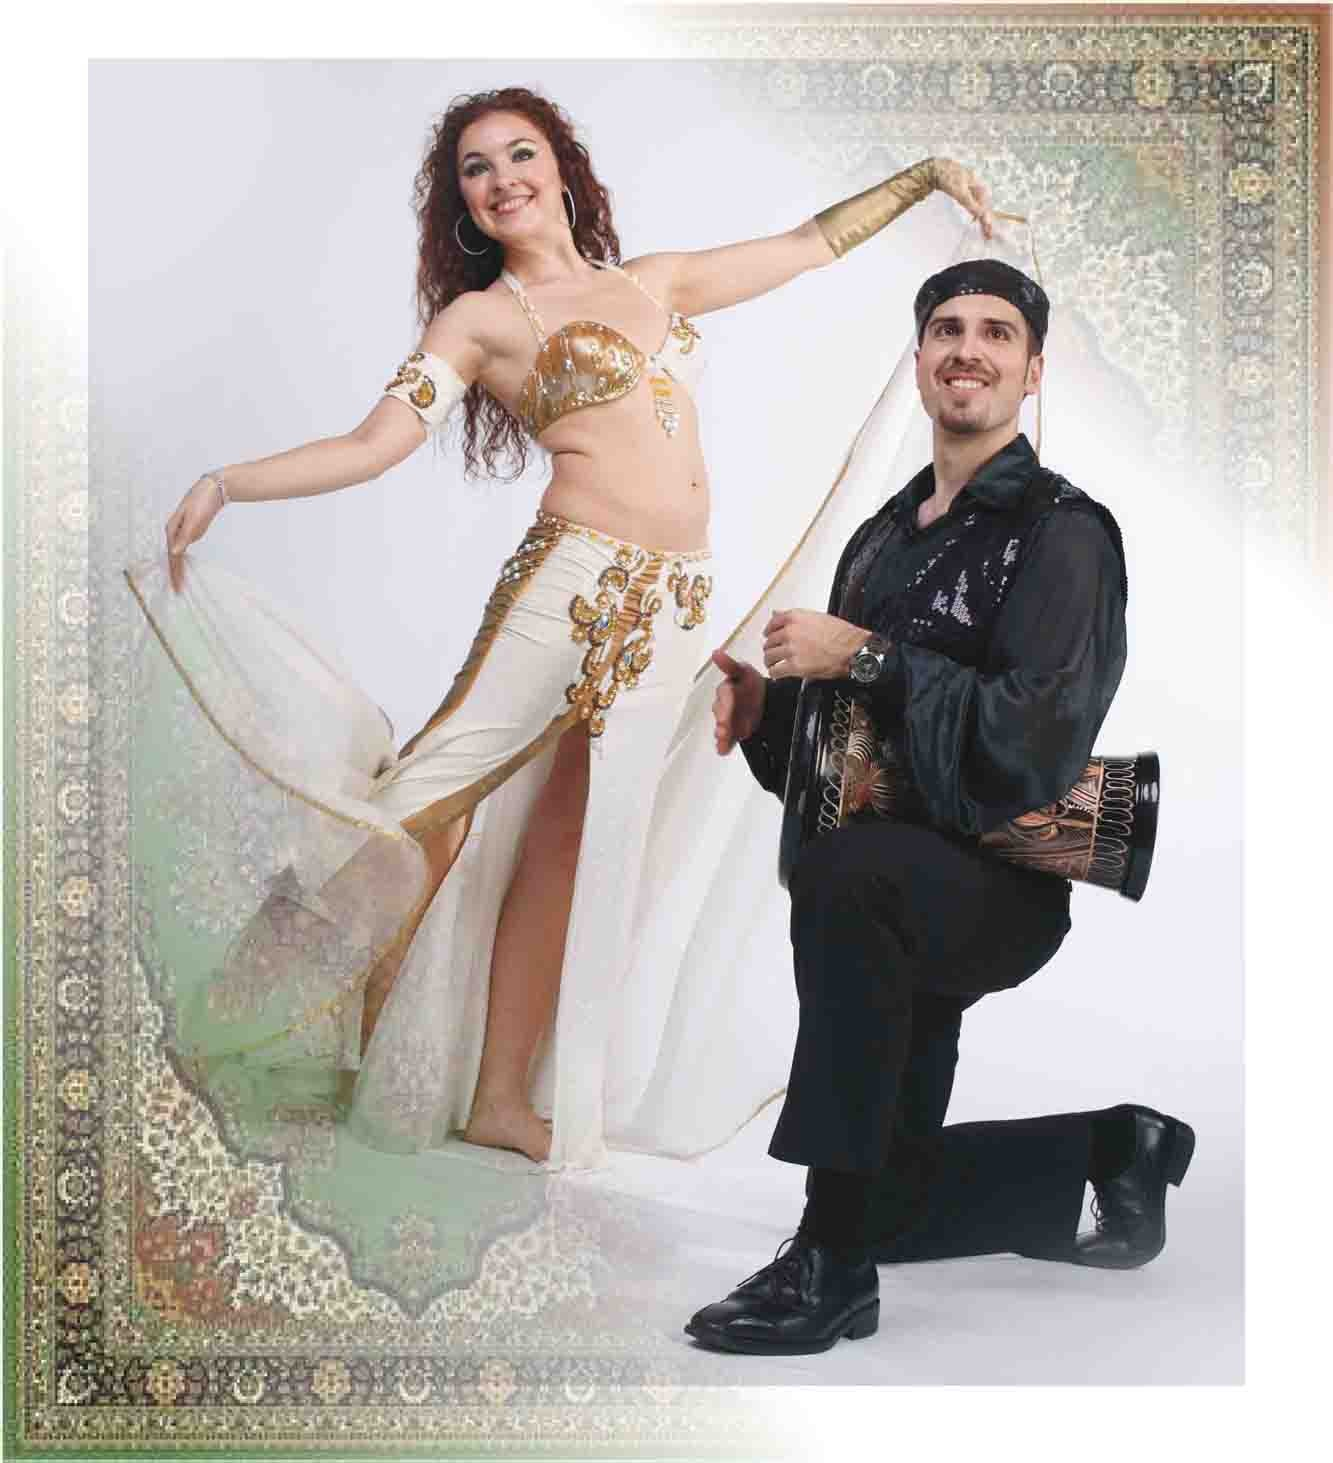 Inessa Kalabekova & Gregory Kalabekov (Belly Dance & Doumbek Drum)